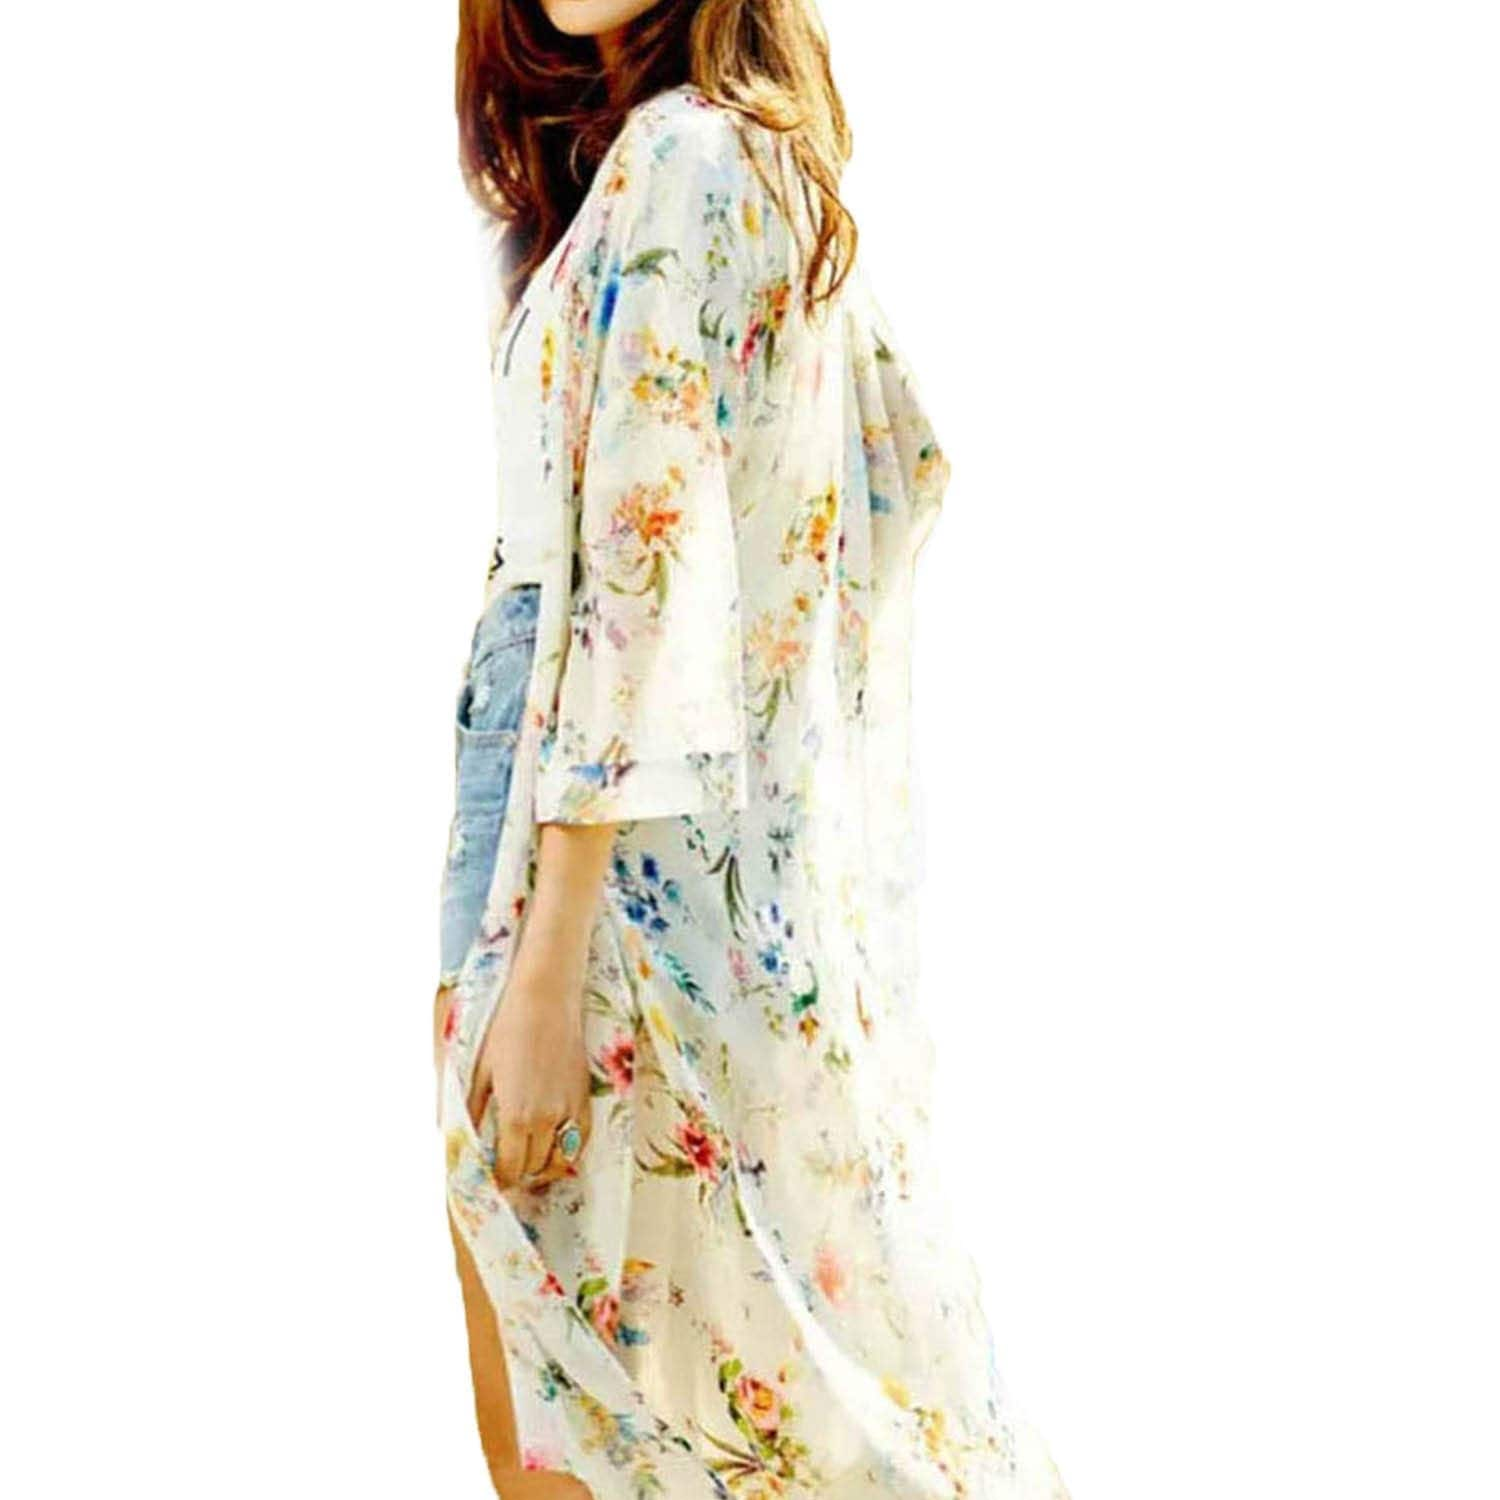 Business Casual Ships Free to USA Beach Wear Kimono Chiffon SUNRISE with Cherry Blossoms and Birds One Size Fits Most Cruise Wear